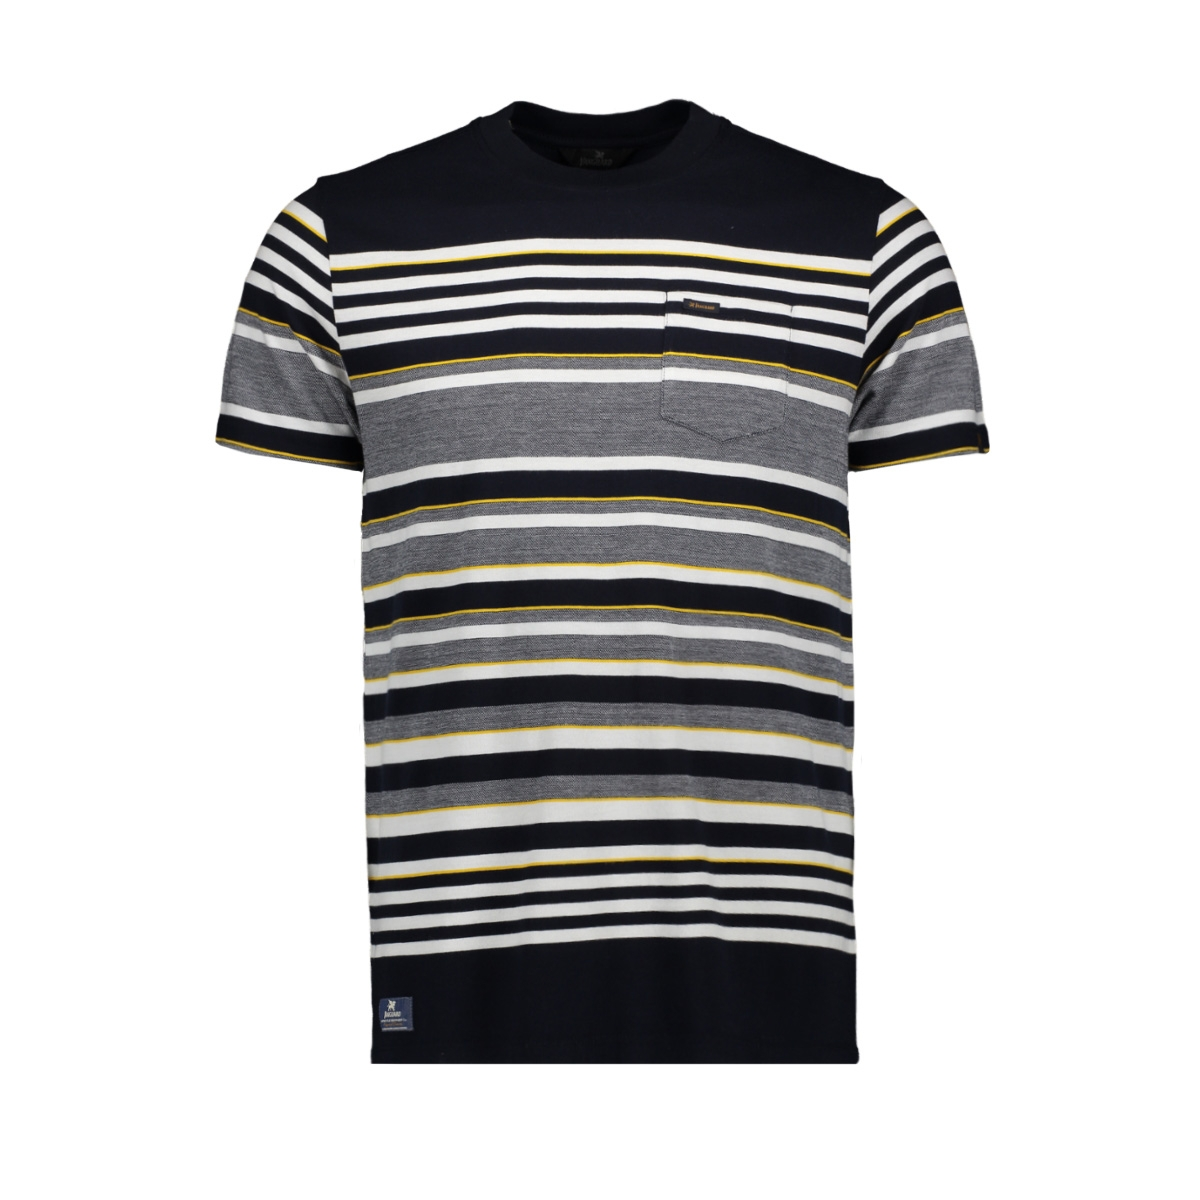 single jersey stripe vtss192650 vanguard t-shirt 5286